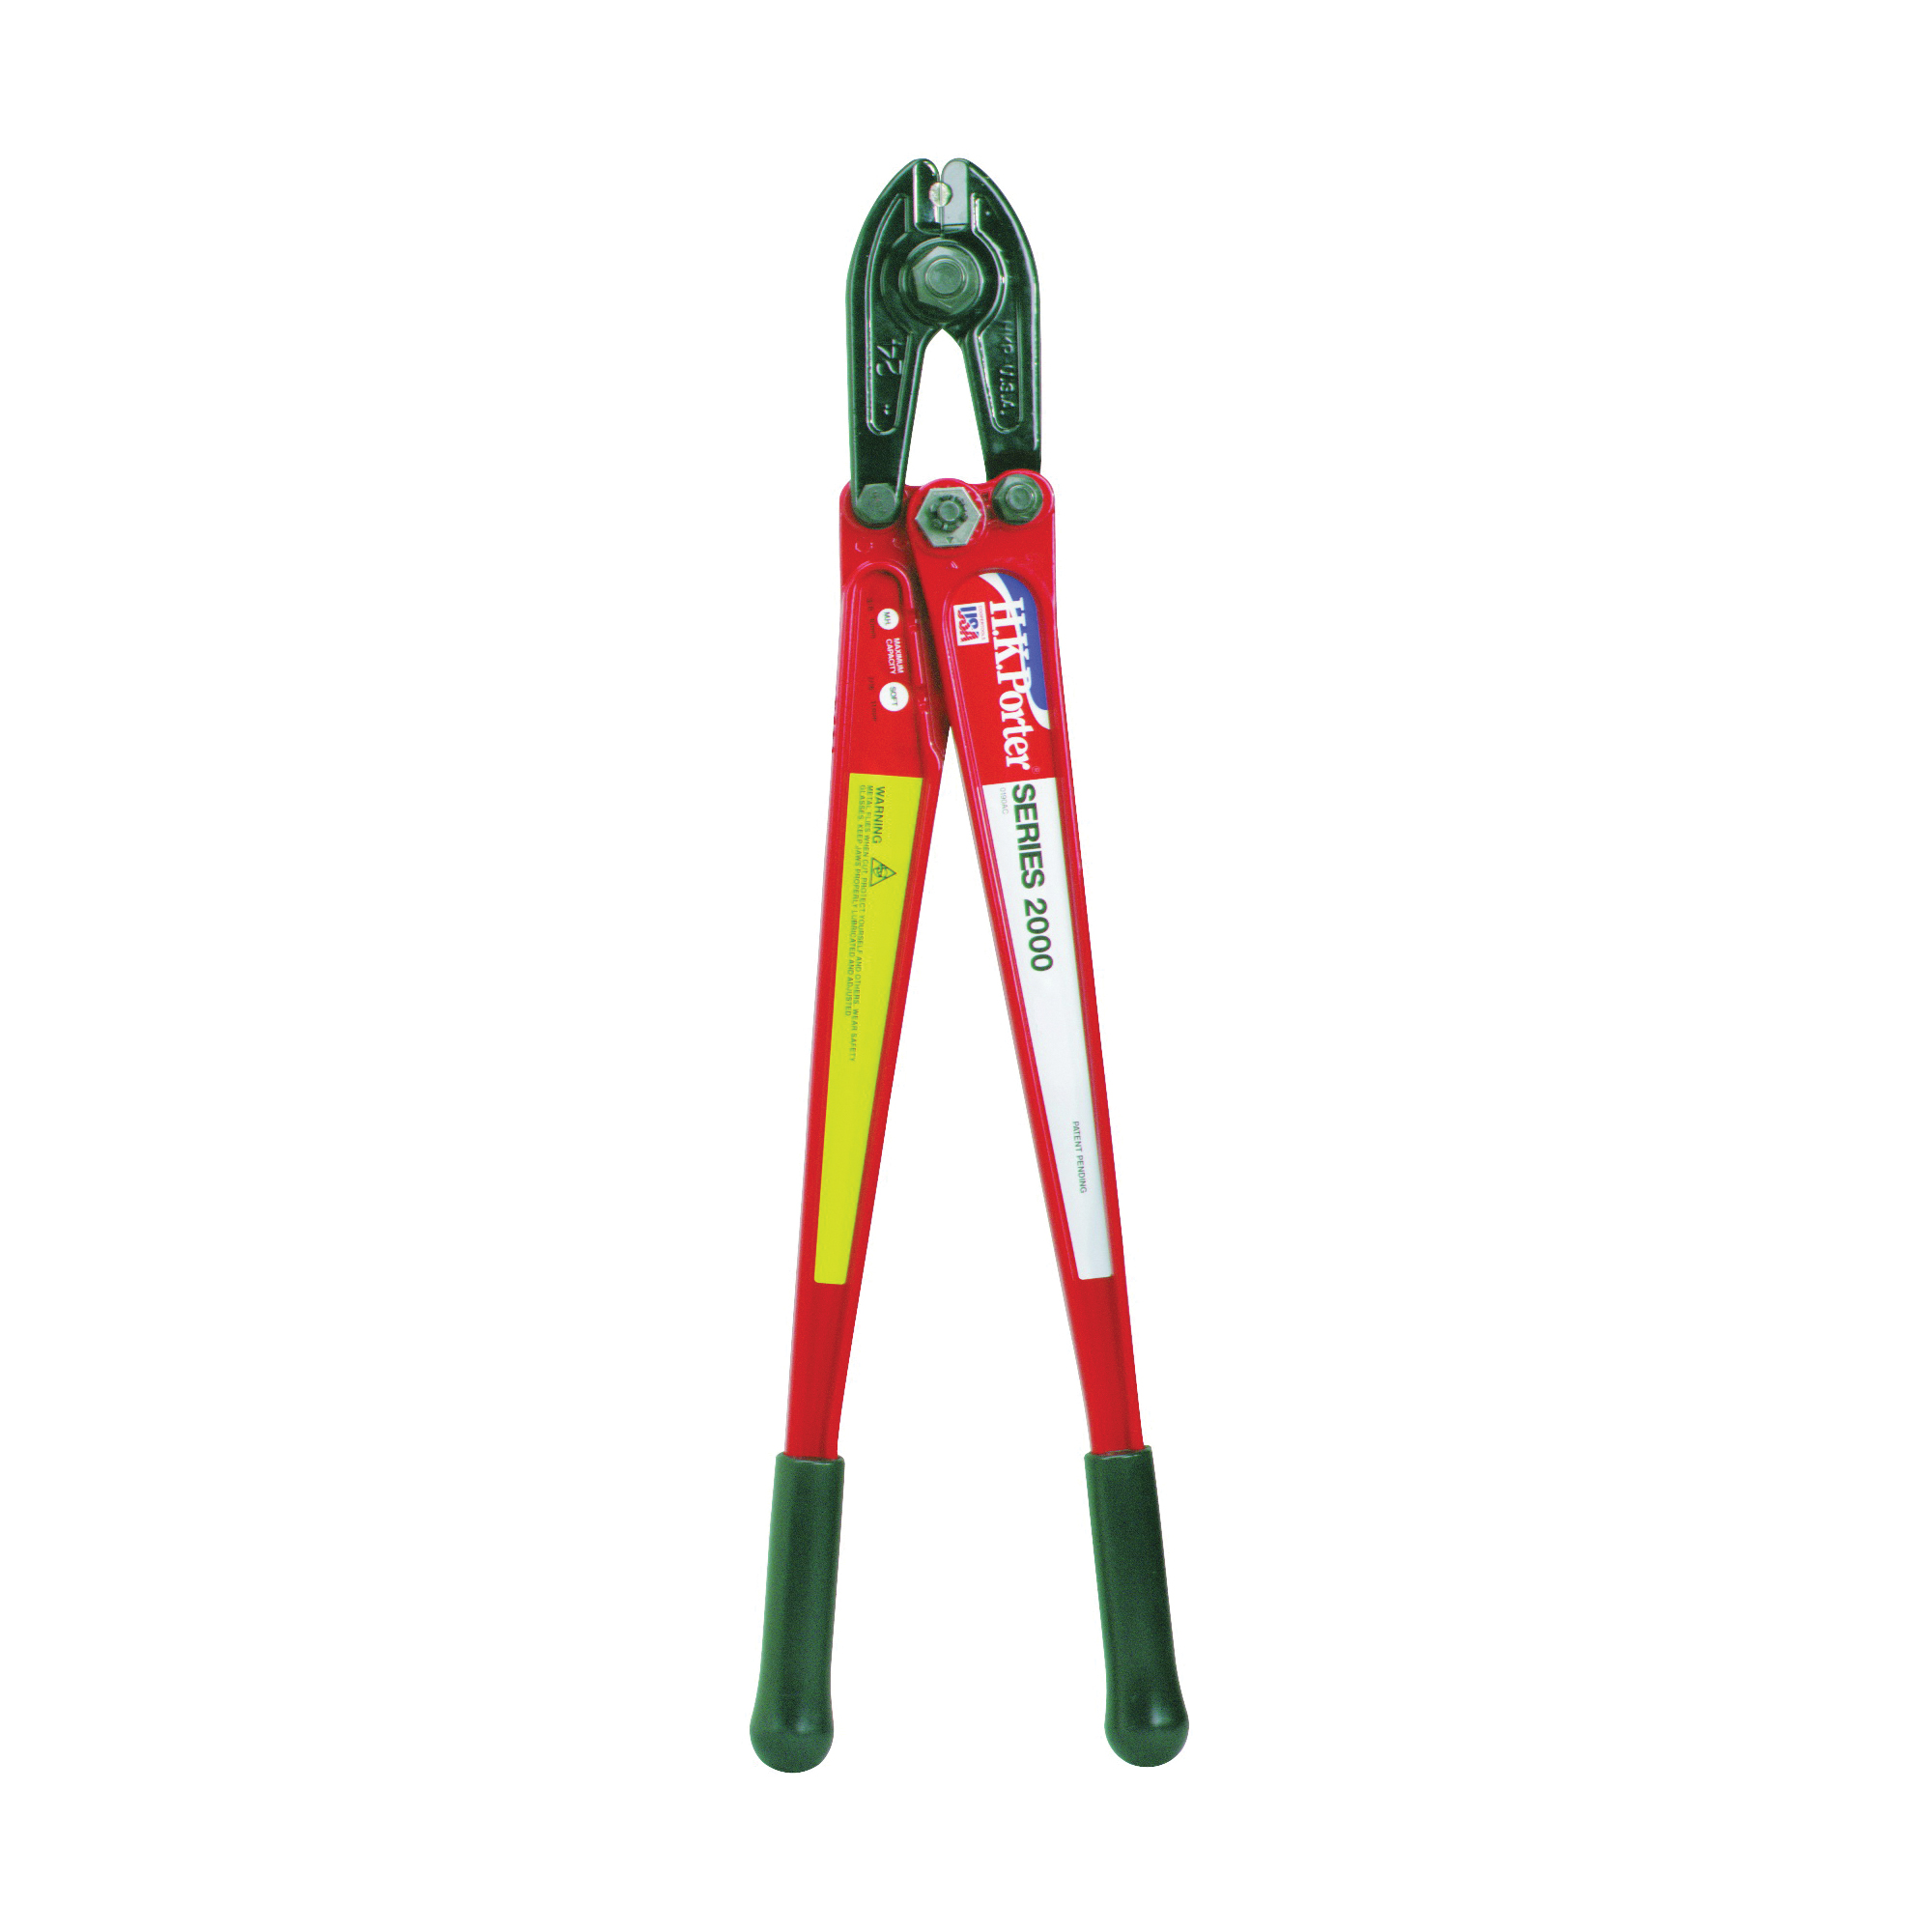 Picture of Crescent HKPorter 0190MCD/0190AC Bolt Cutter, 3/8 in Cutting Capacity, Steel Jaw, 24 in OAL